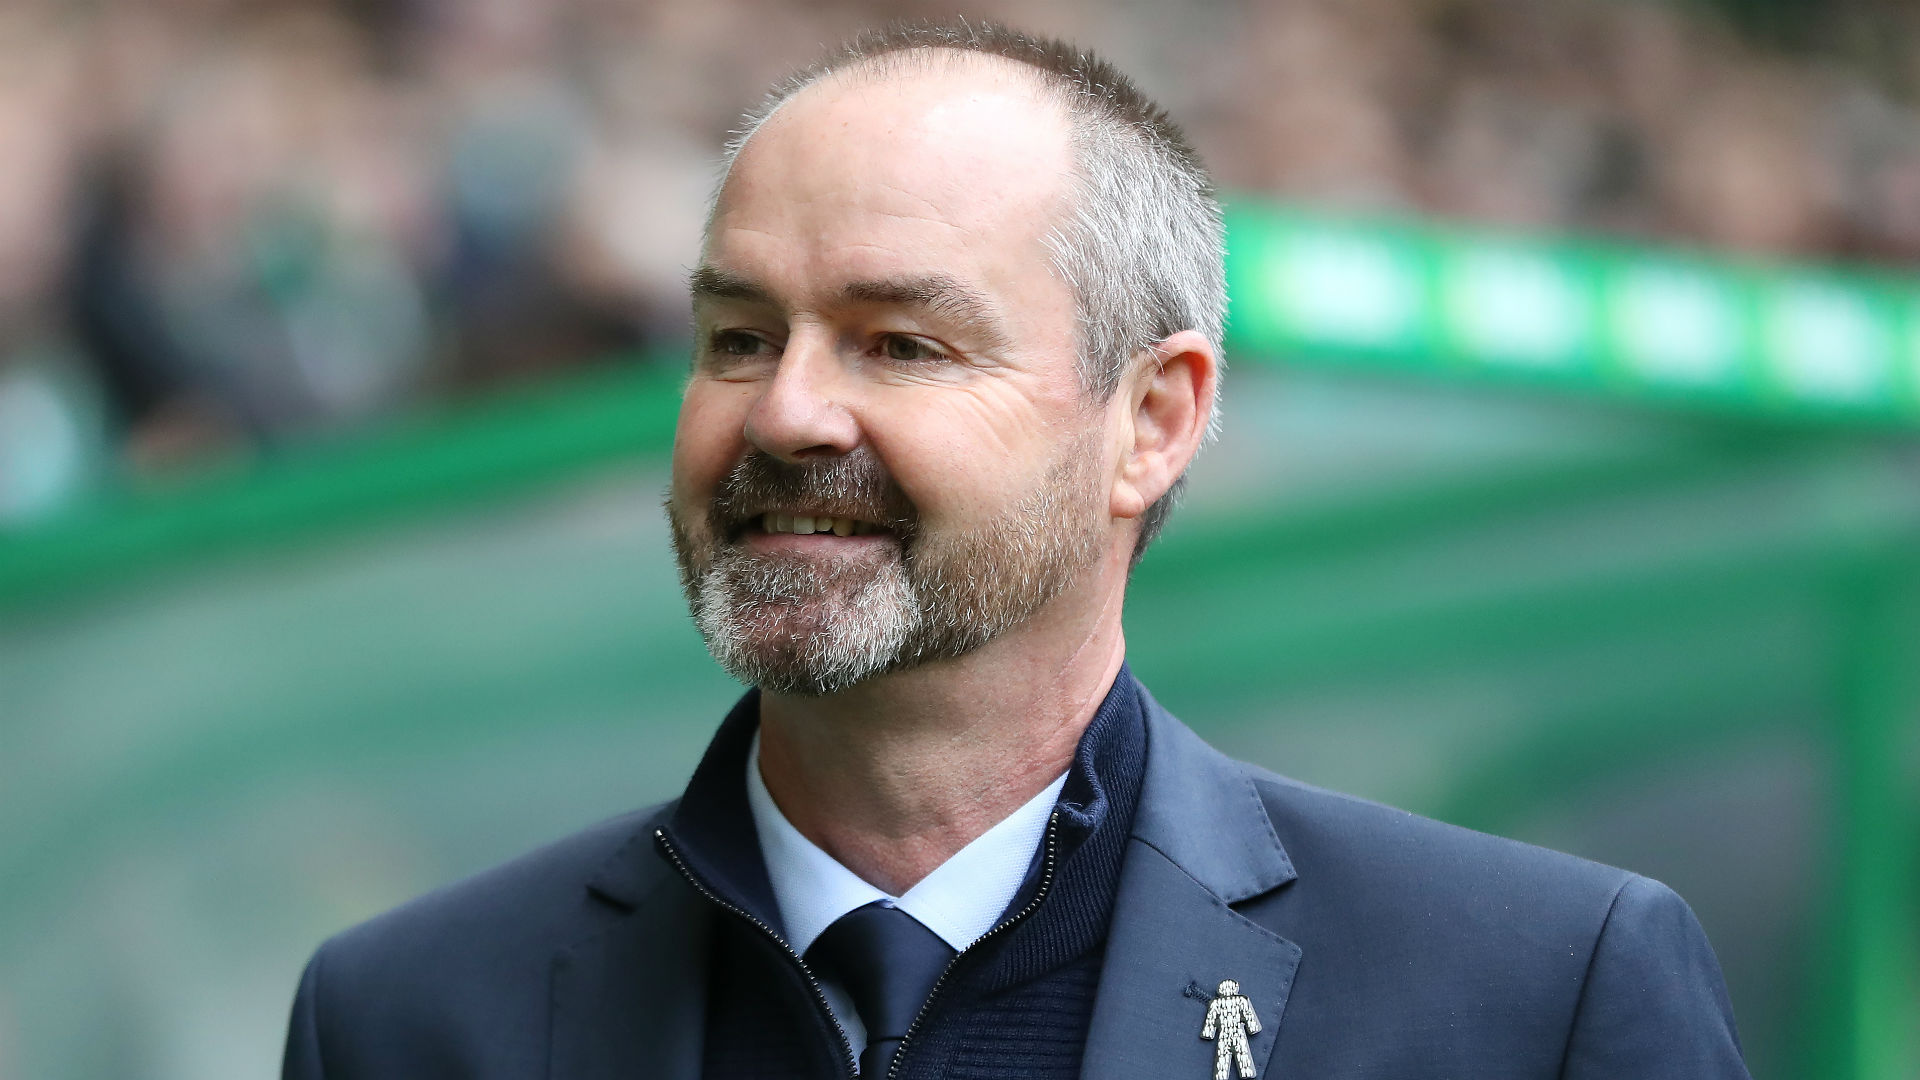 After securing European football for Kilmarnock, Steve Clarke has been appointed as Scotland head coach.